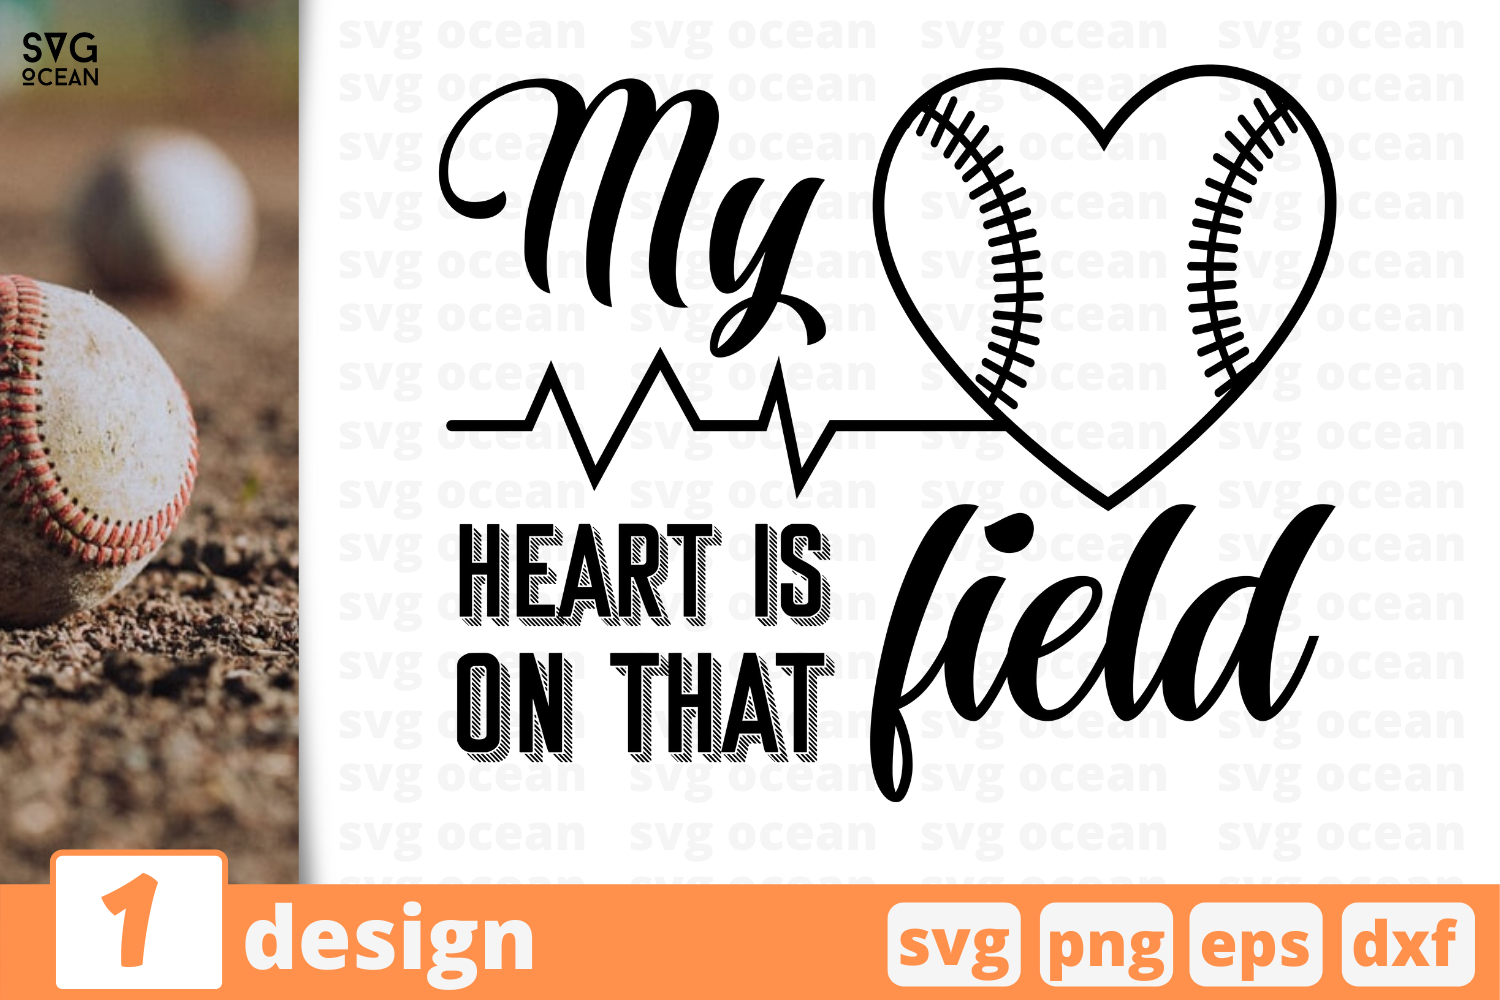 Download Free My Heart Is On That Field Graphic By Svgocean Creative Fabrica SVG Cut Files